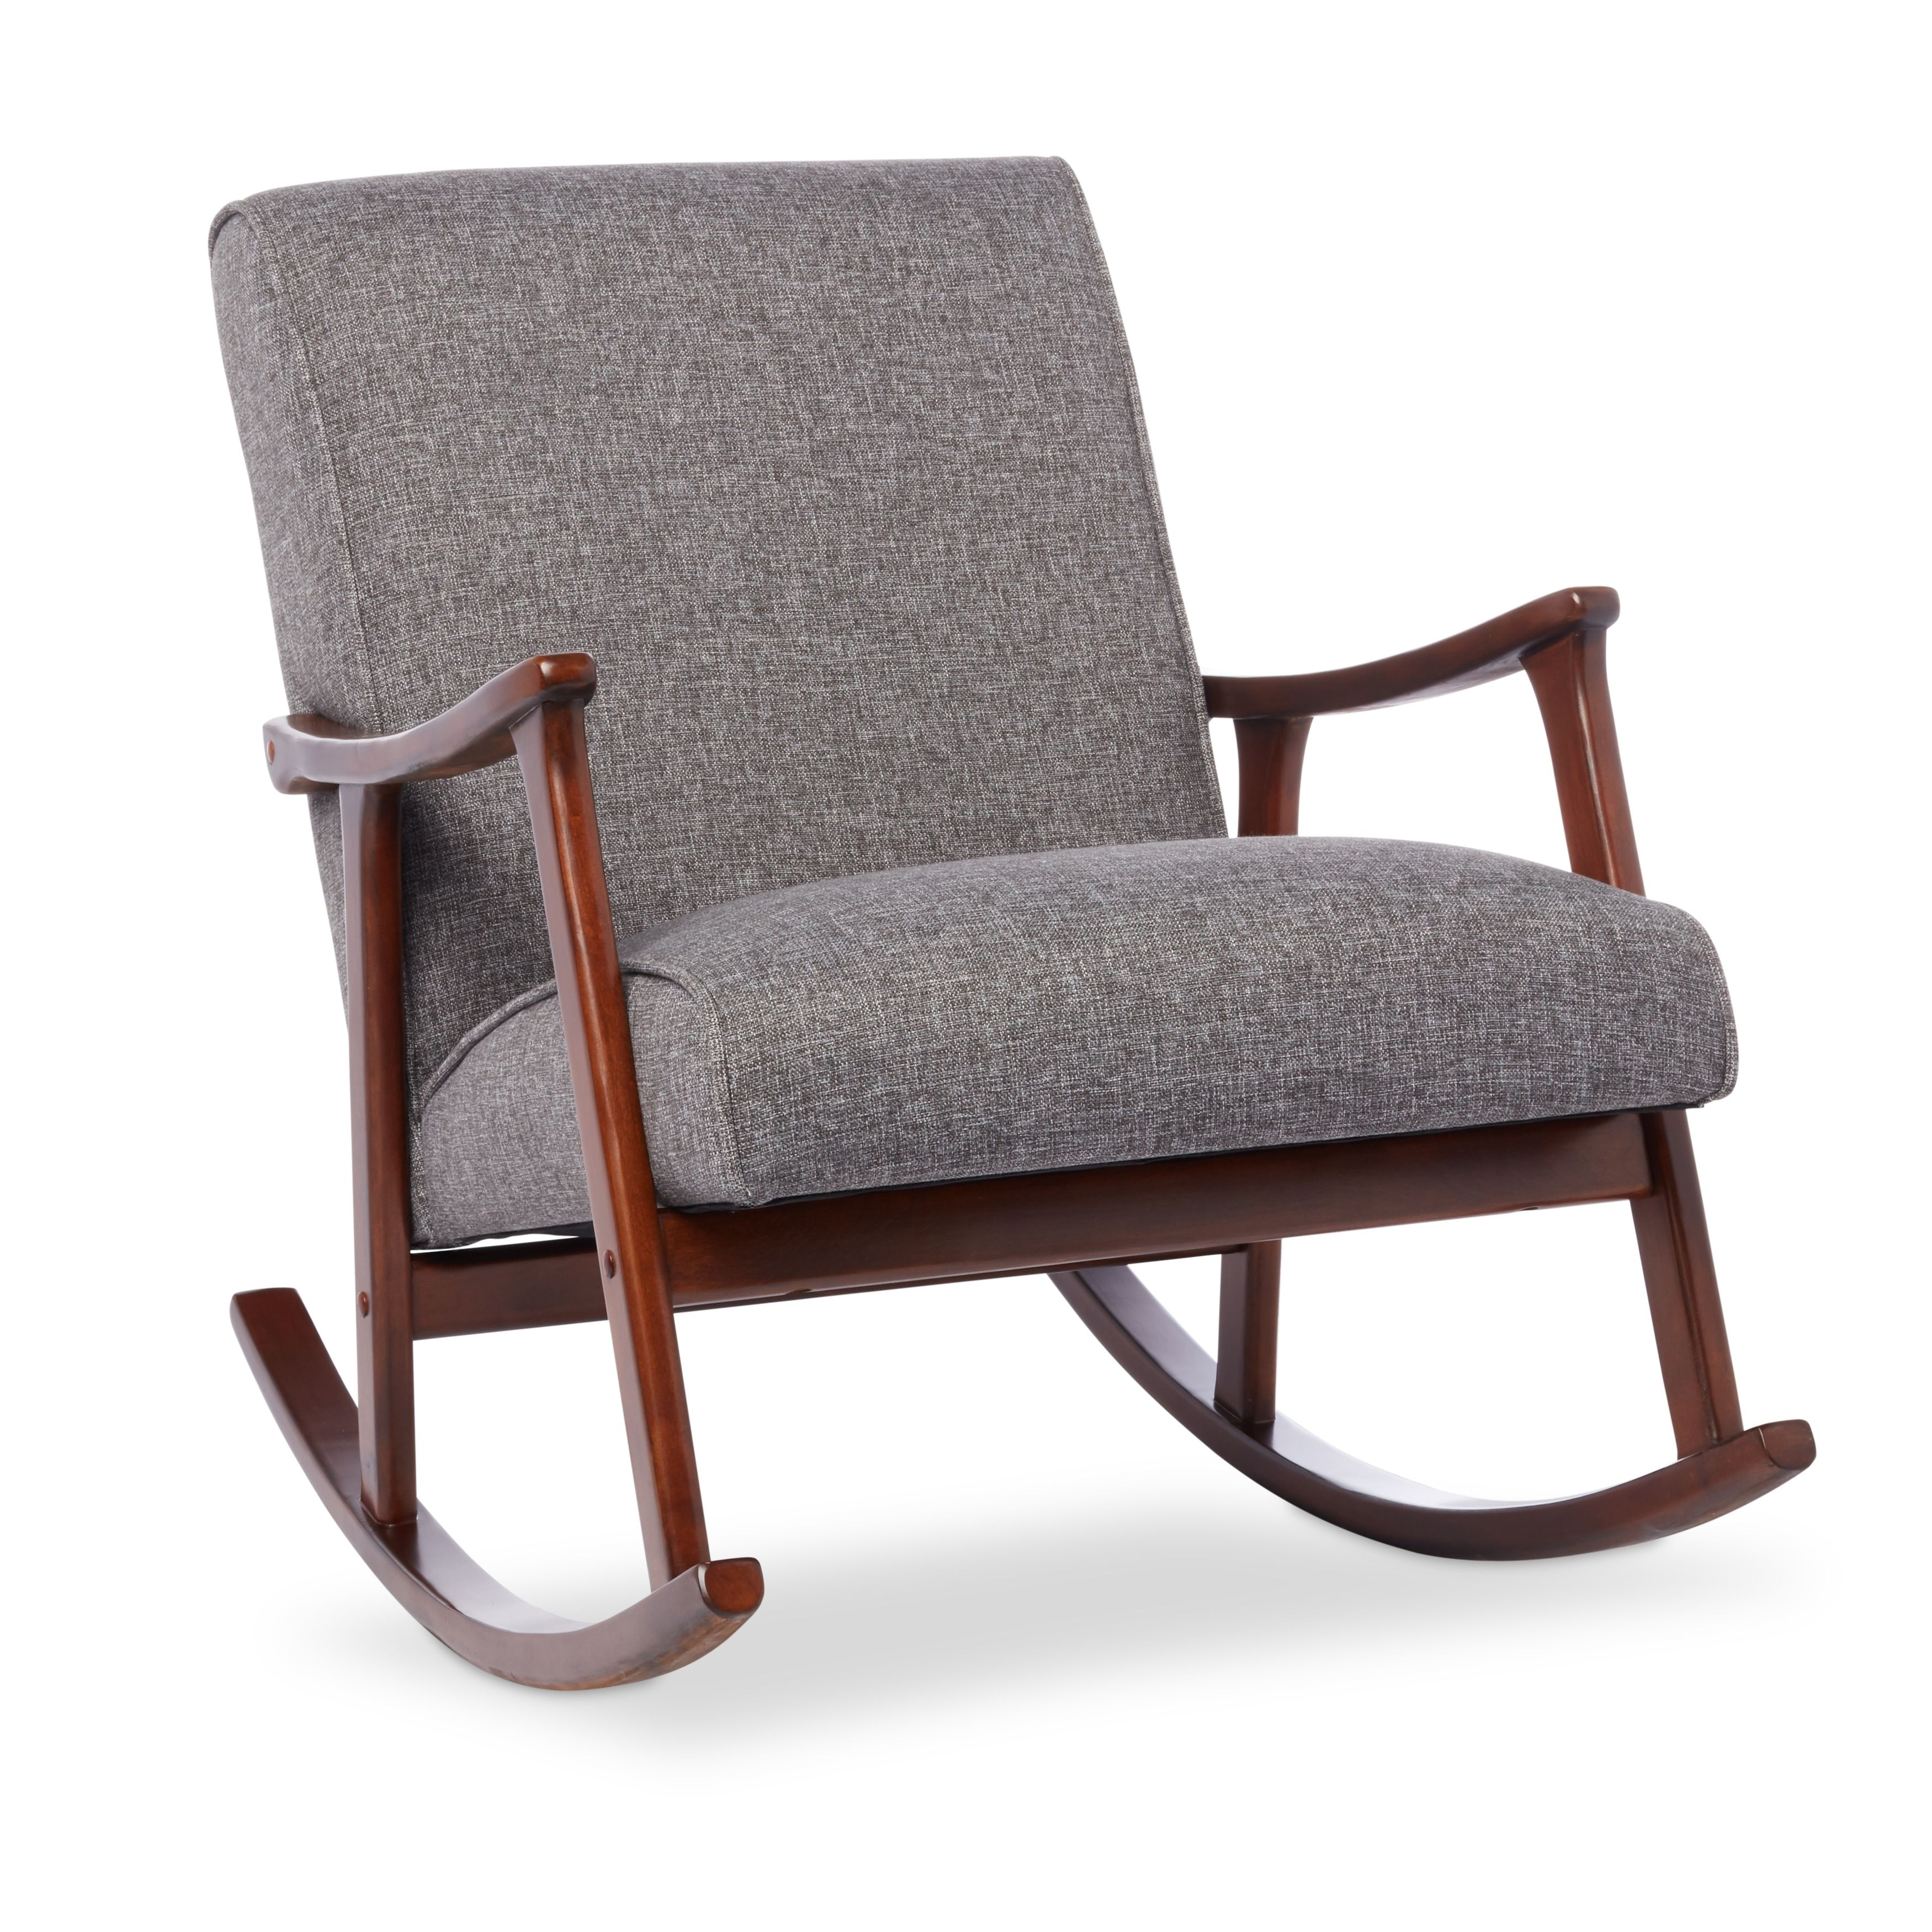 Inspiration about Granite Grey Fabric Mid Century Wooden Rocking Chair Throughout Granite Grey Fabric Mid Century Wooden Rocking Chairs (#6 of 20)